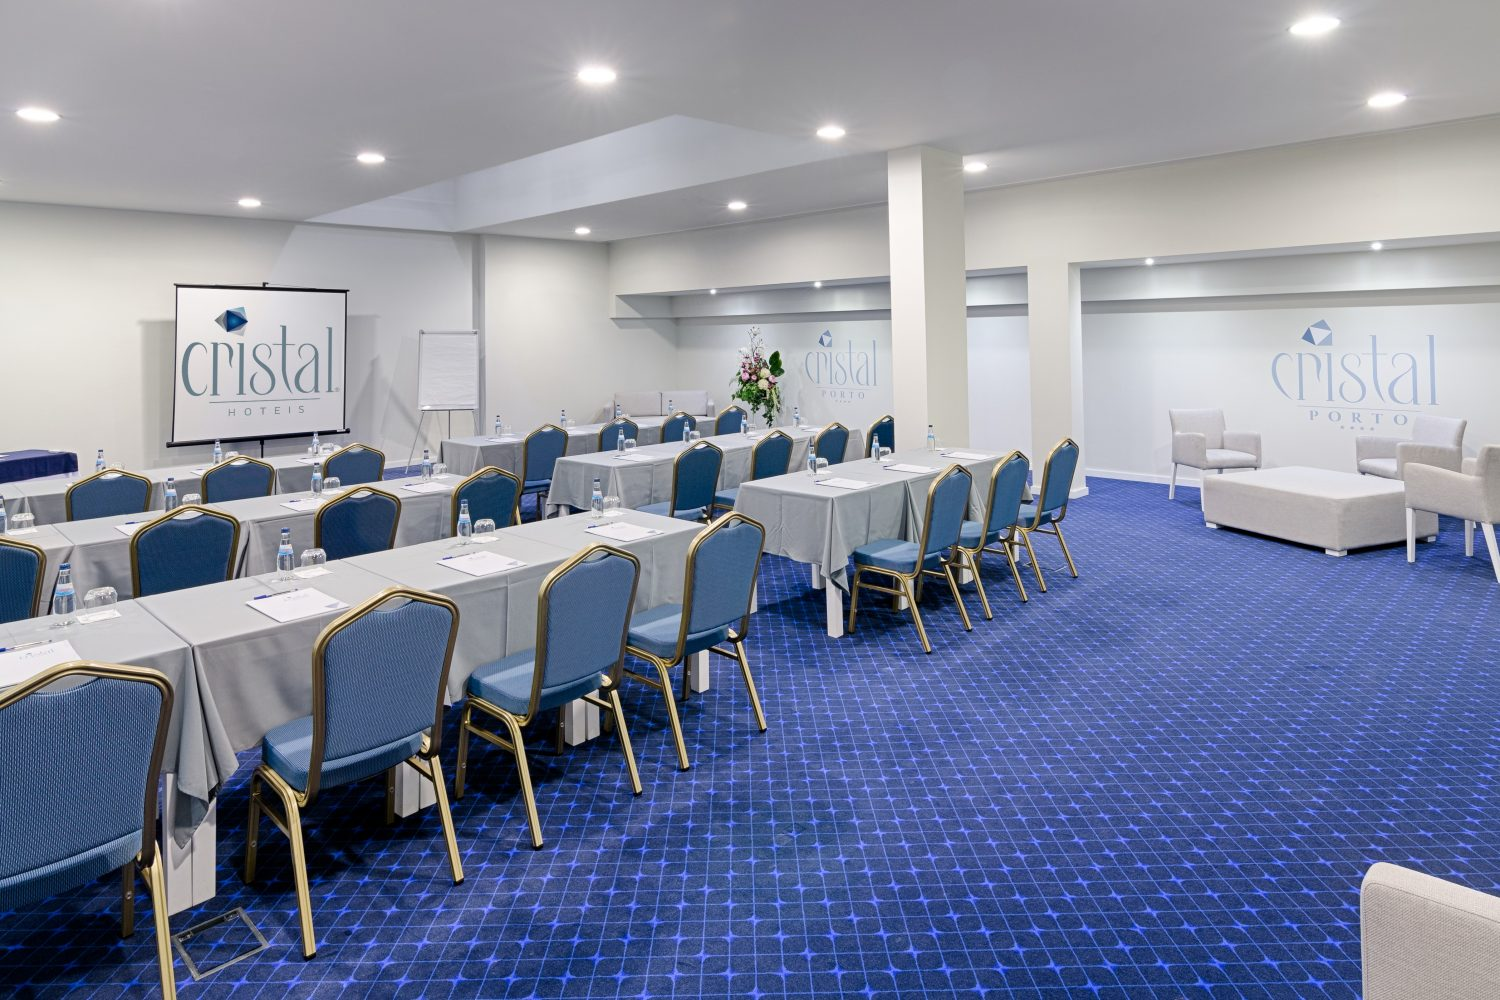 Different view of the Onix Conference room at the Hotel Cristal Porto